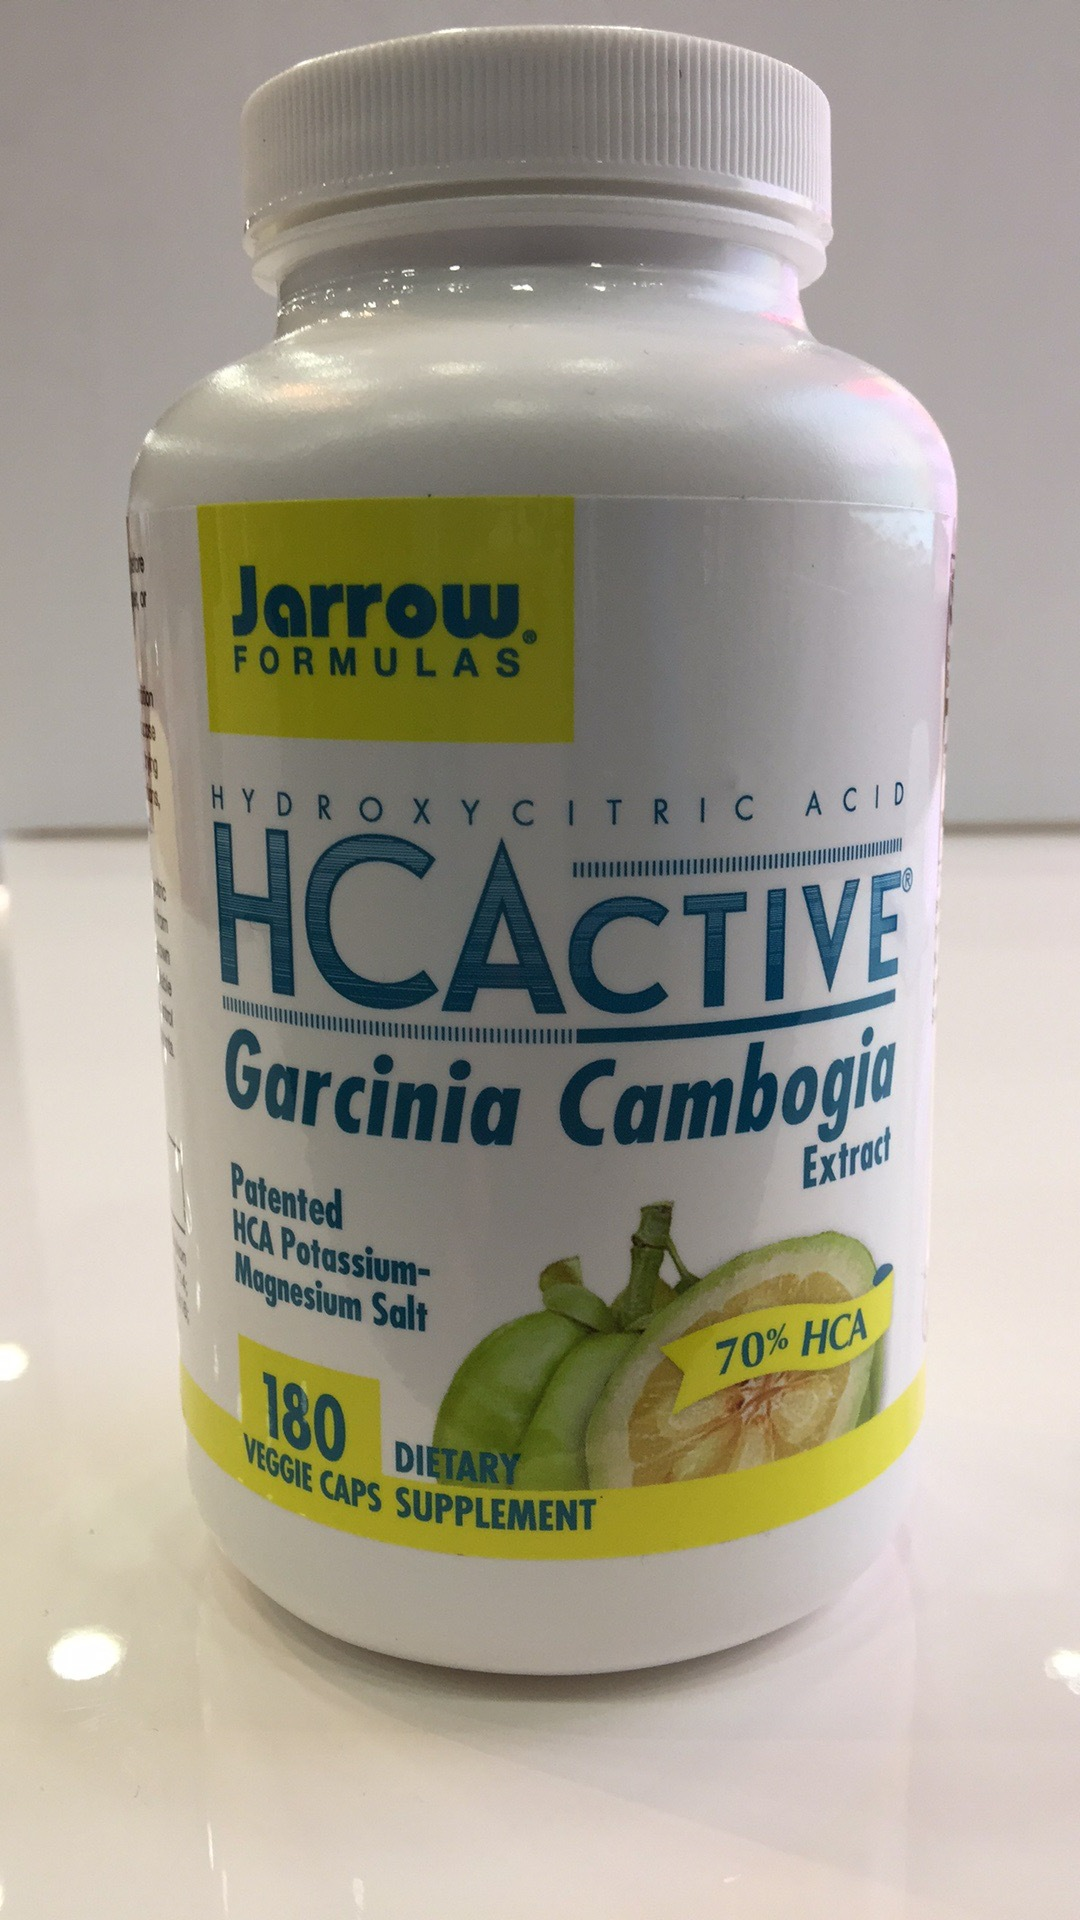 Hcactive Garcinia Cambogia Extract Dietary Supplement The Natural